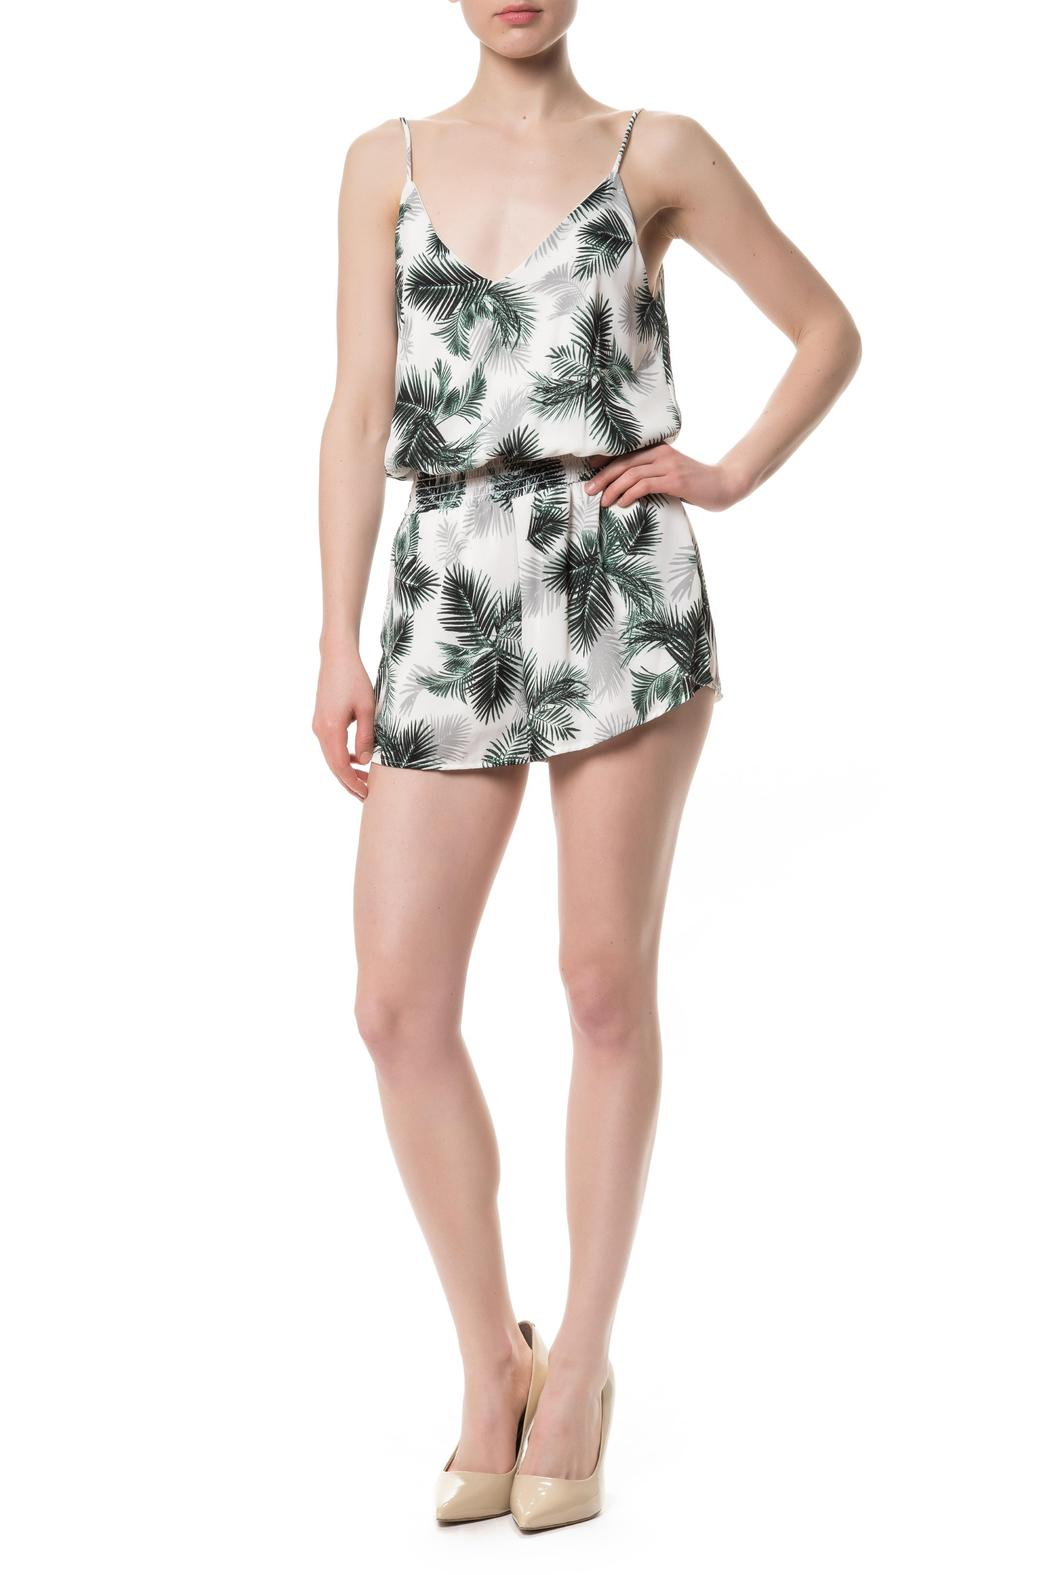 05a71473afcf Vintage Havana Palm Print Romper from New York by Montmartre ...